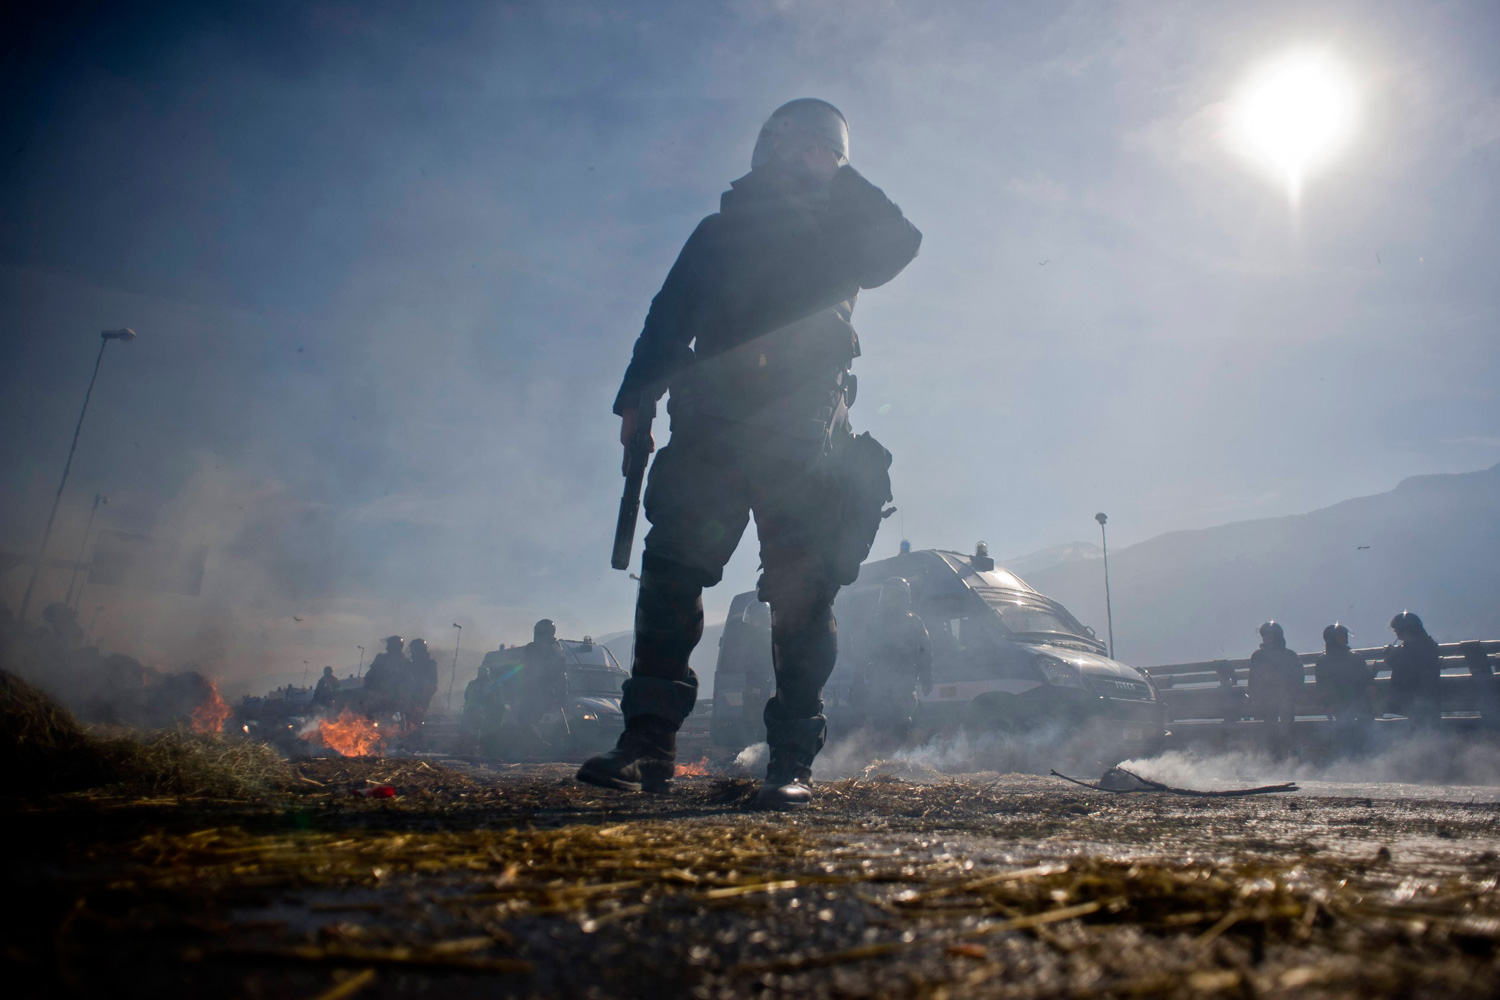 Feb. 28, 2012. Riot police stand guard during a sit-in protest against the construction of the TAV, near Chianocco, north of Turin, Italy.